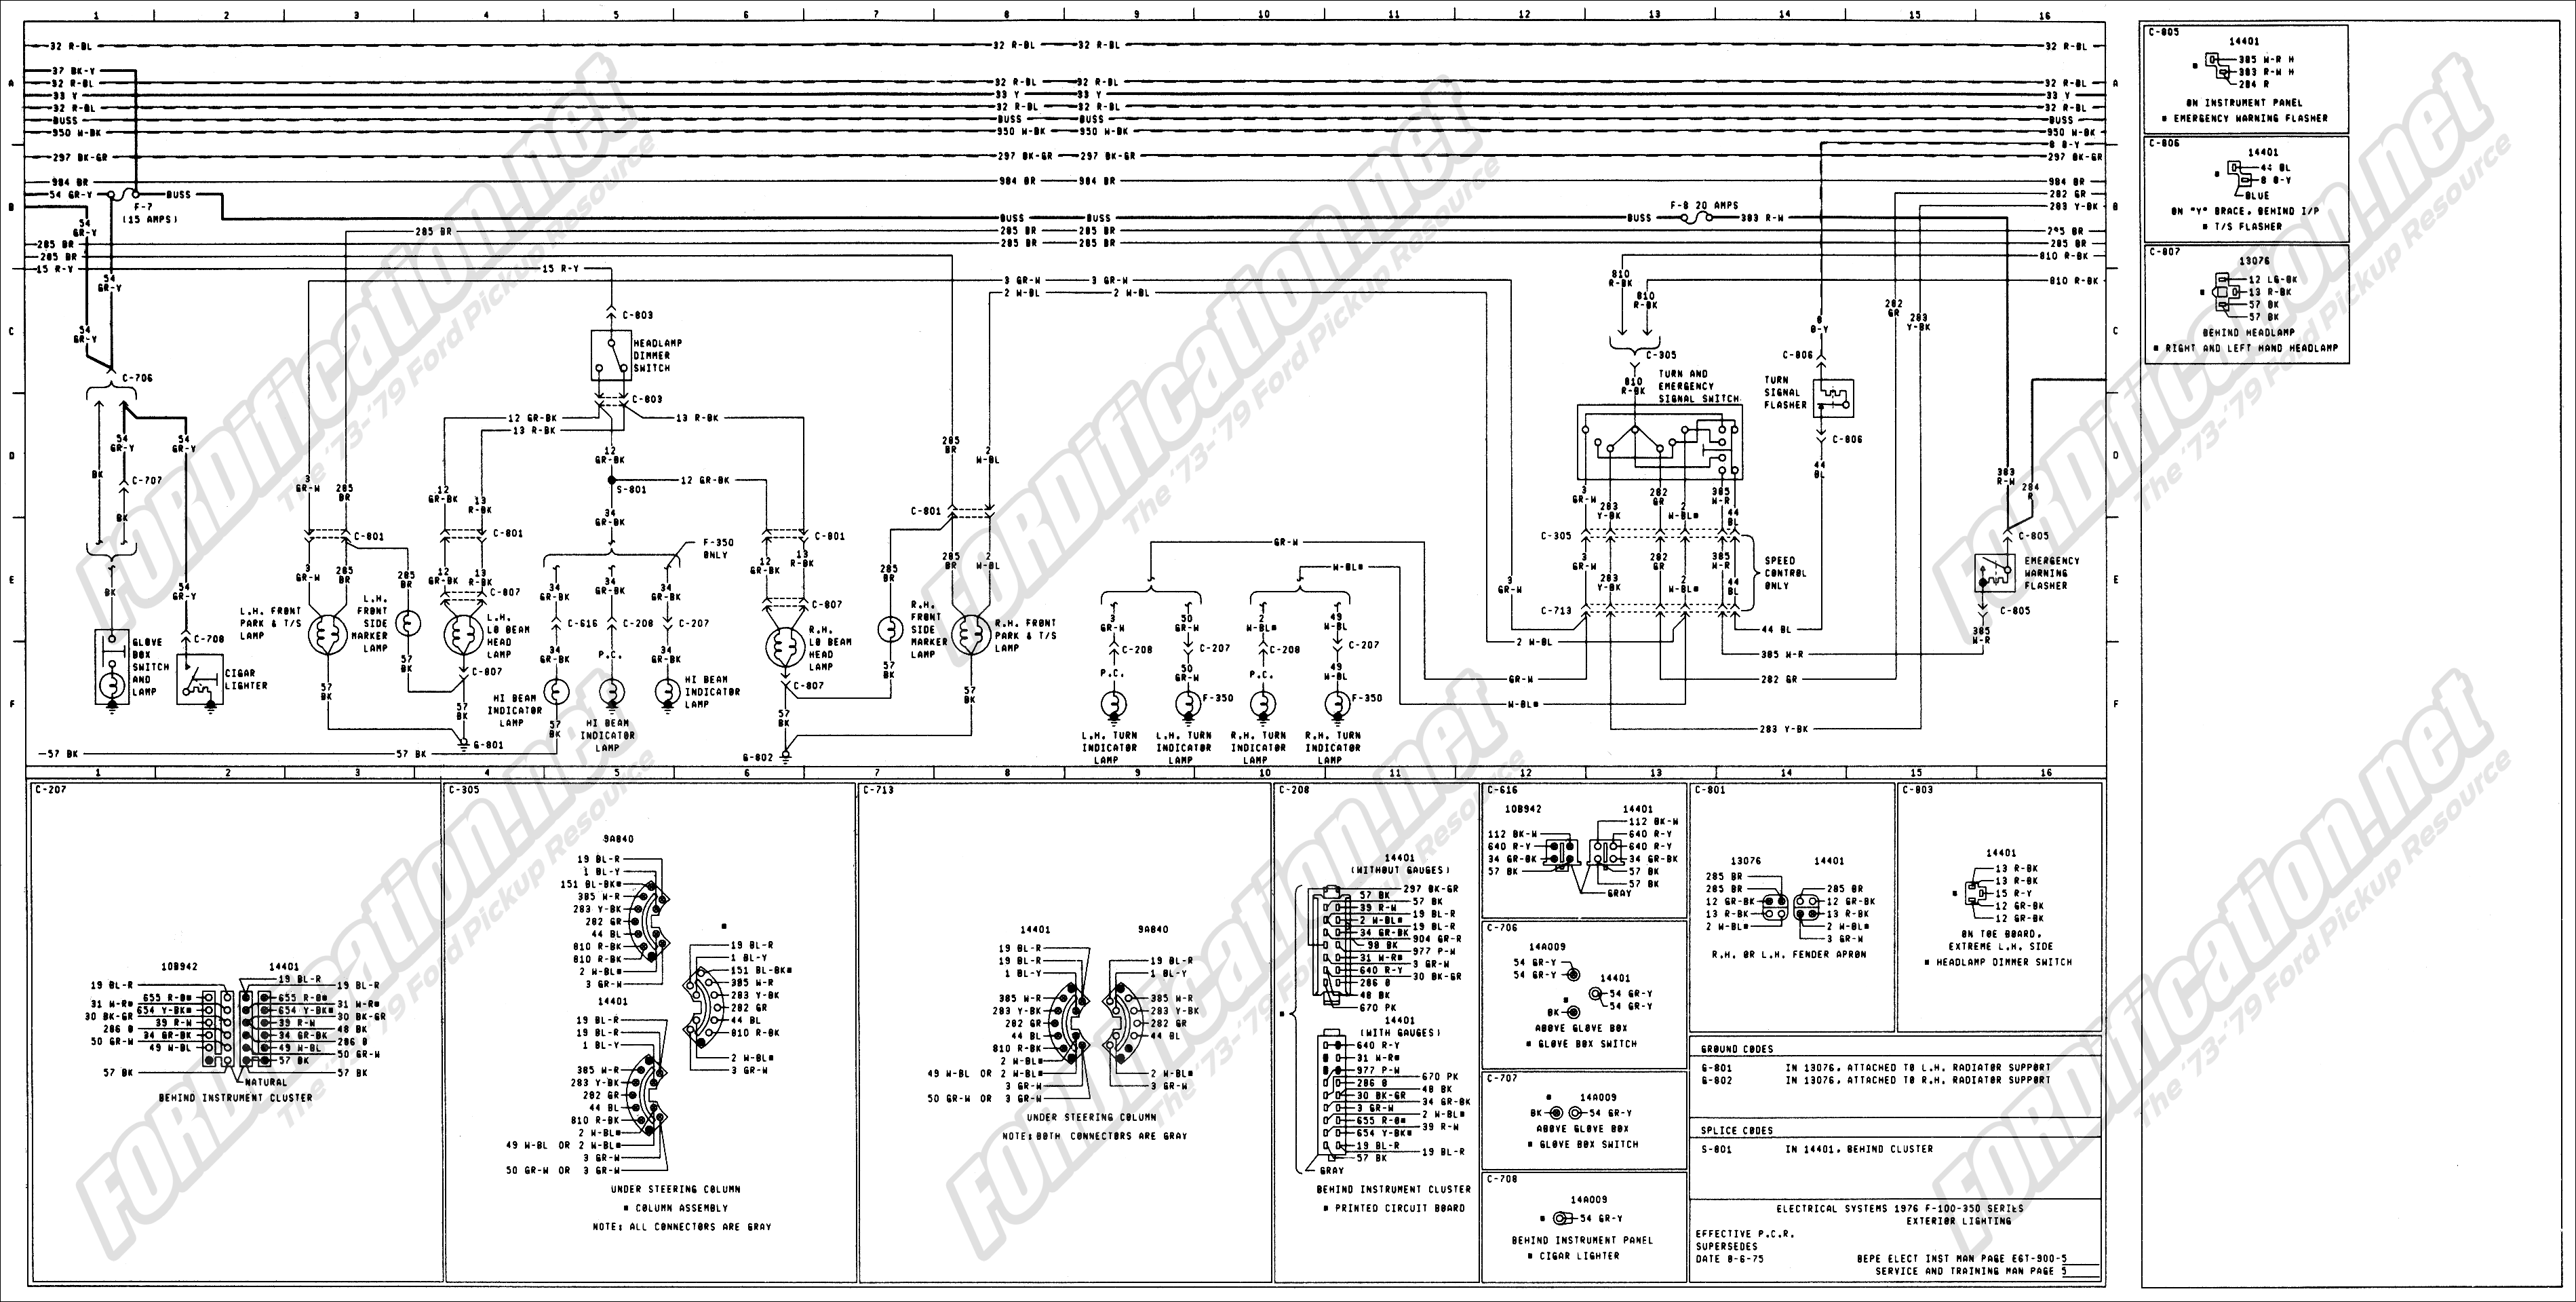 1973 1979 ford truck wiring diagrams schematics fordification net rh  fordification net 06 Mustang Wiring Diagram